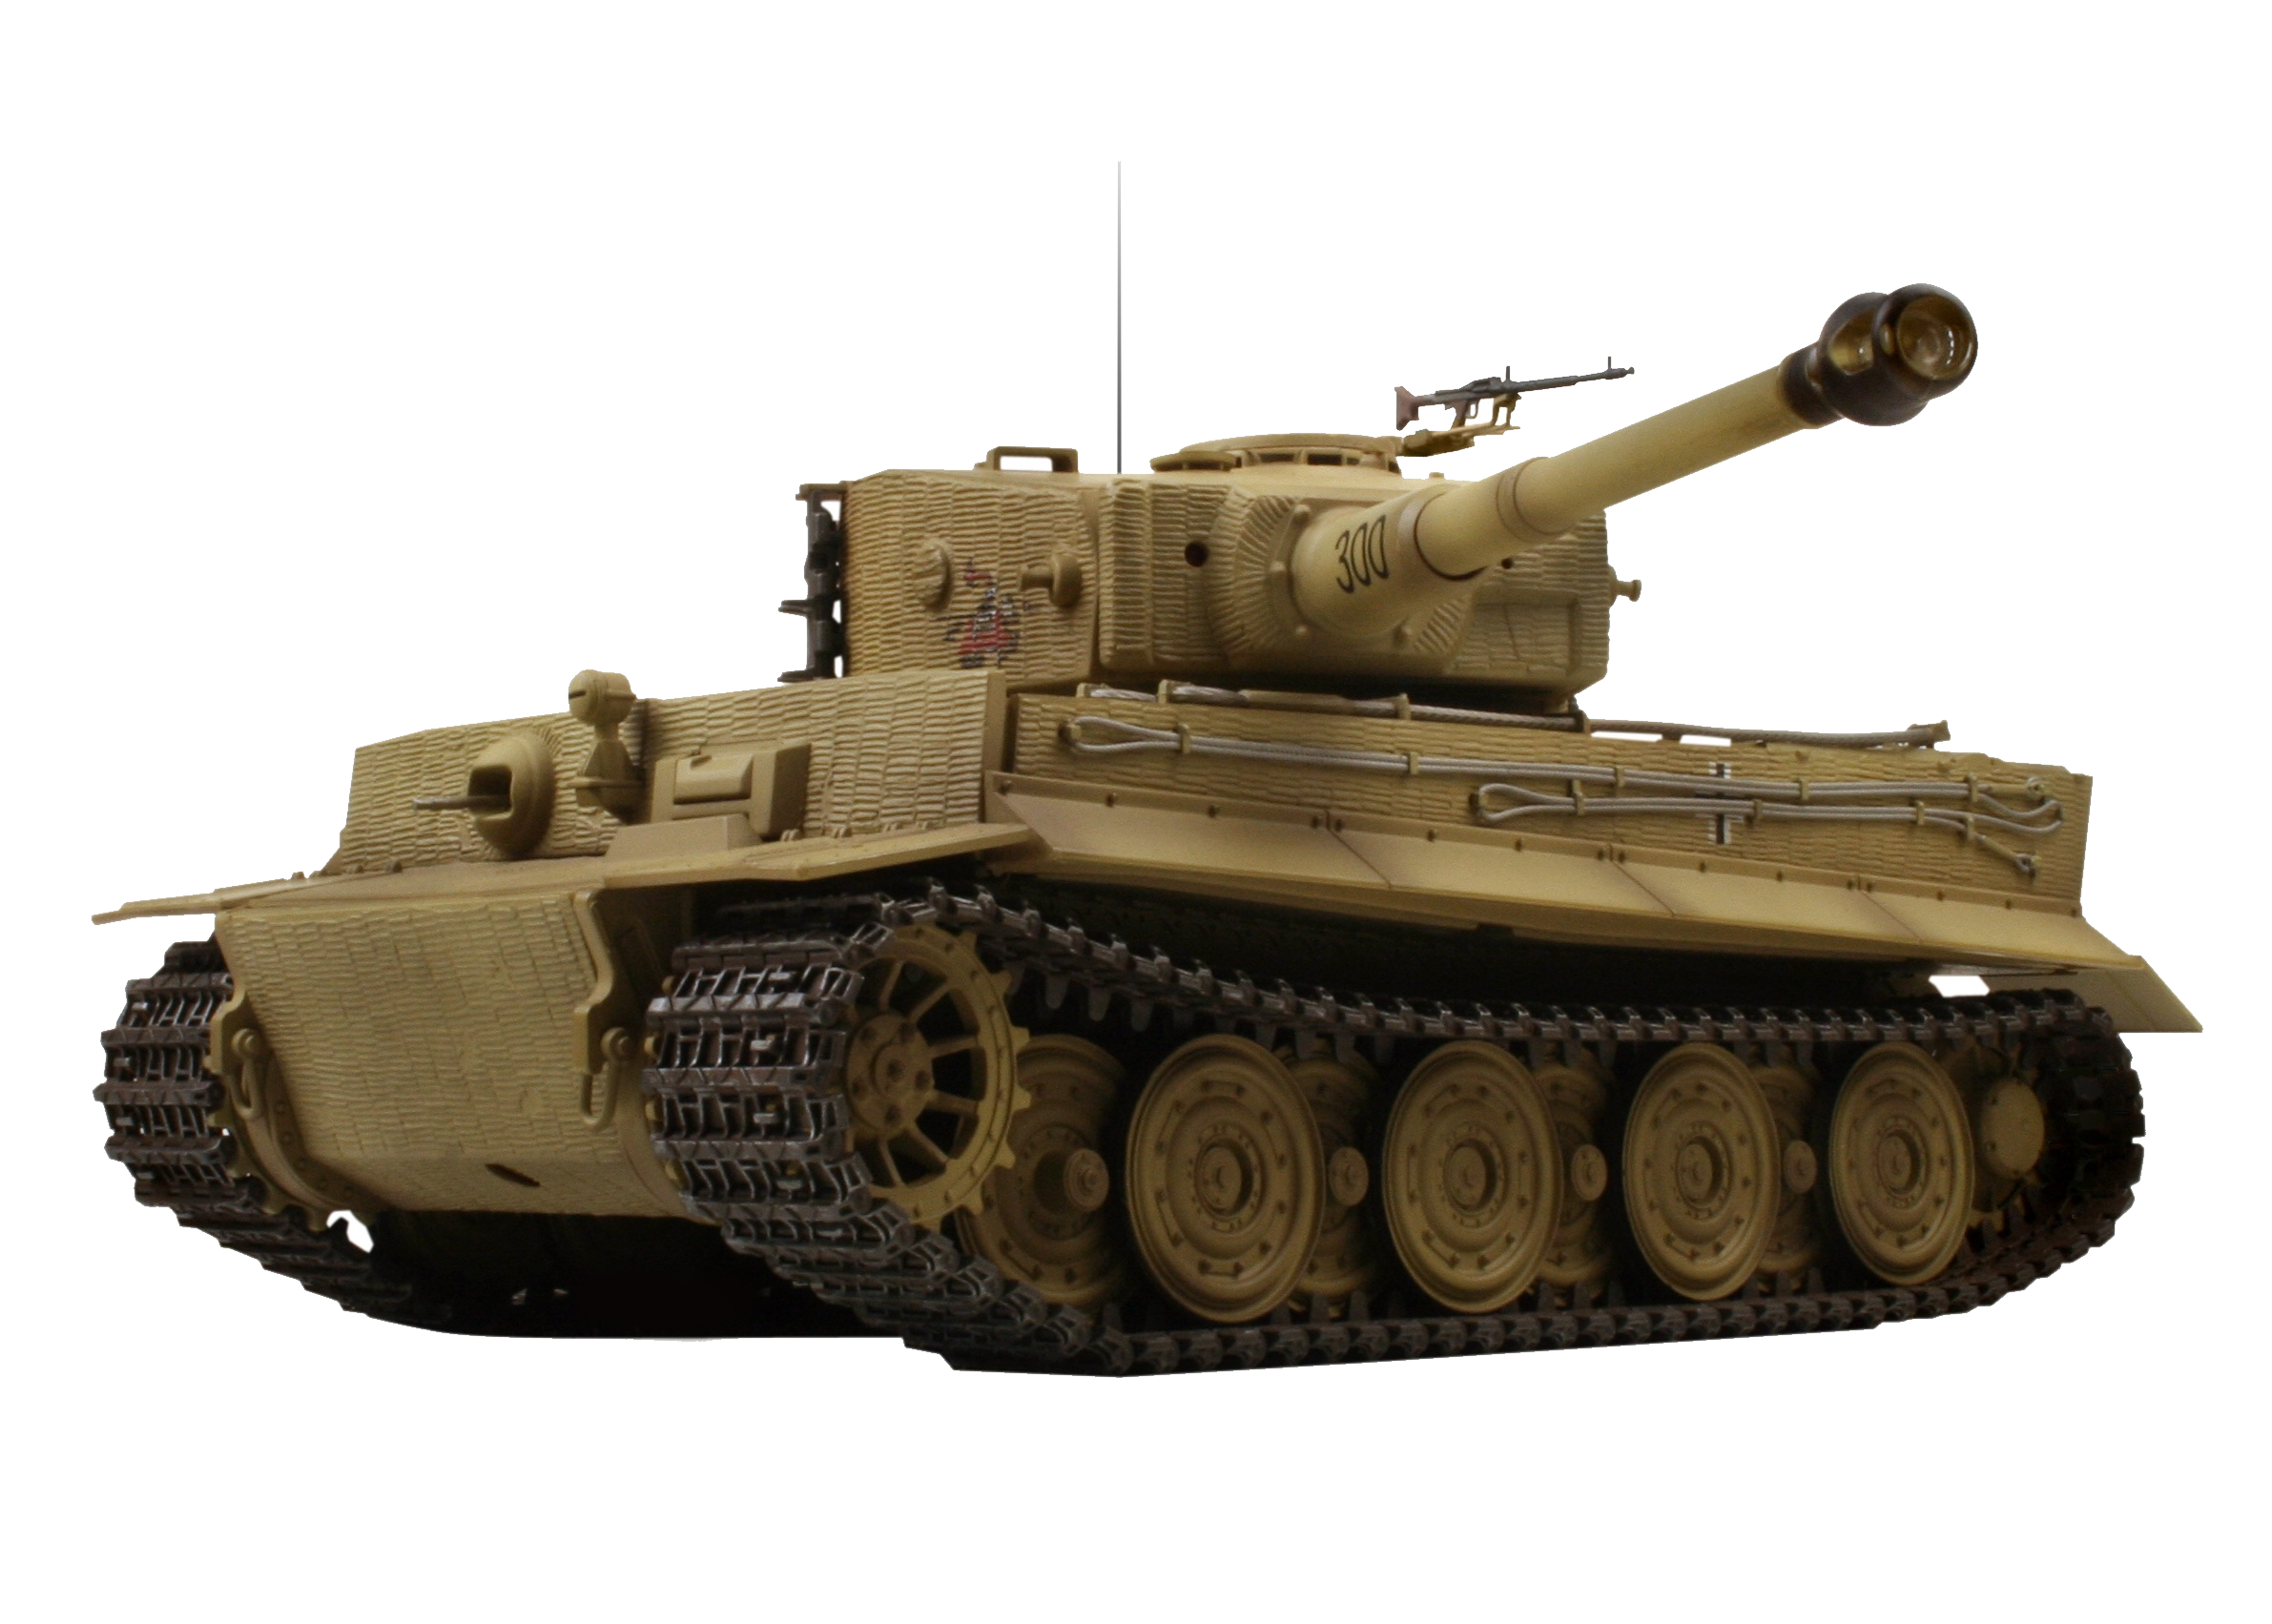 Military Tank PNG - 2638